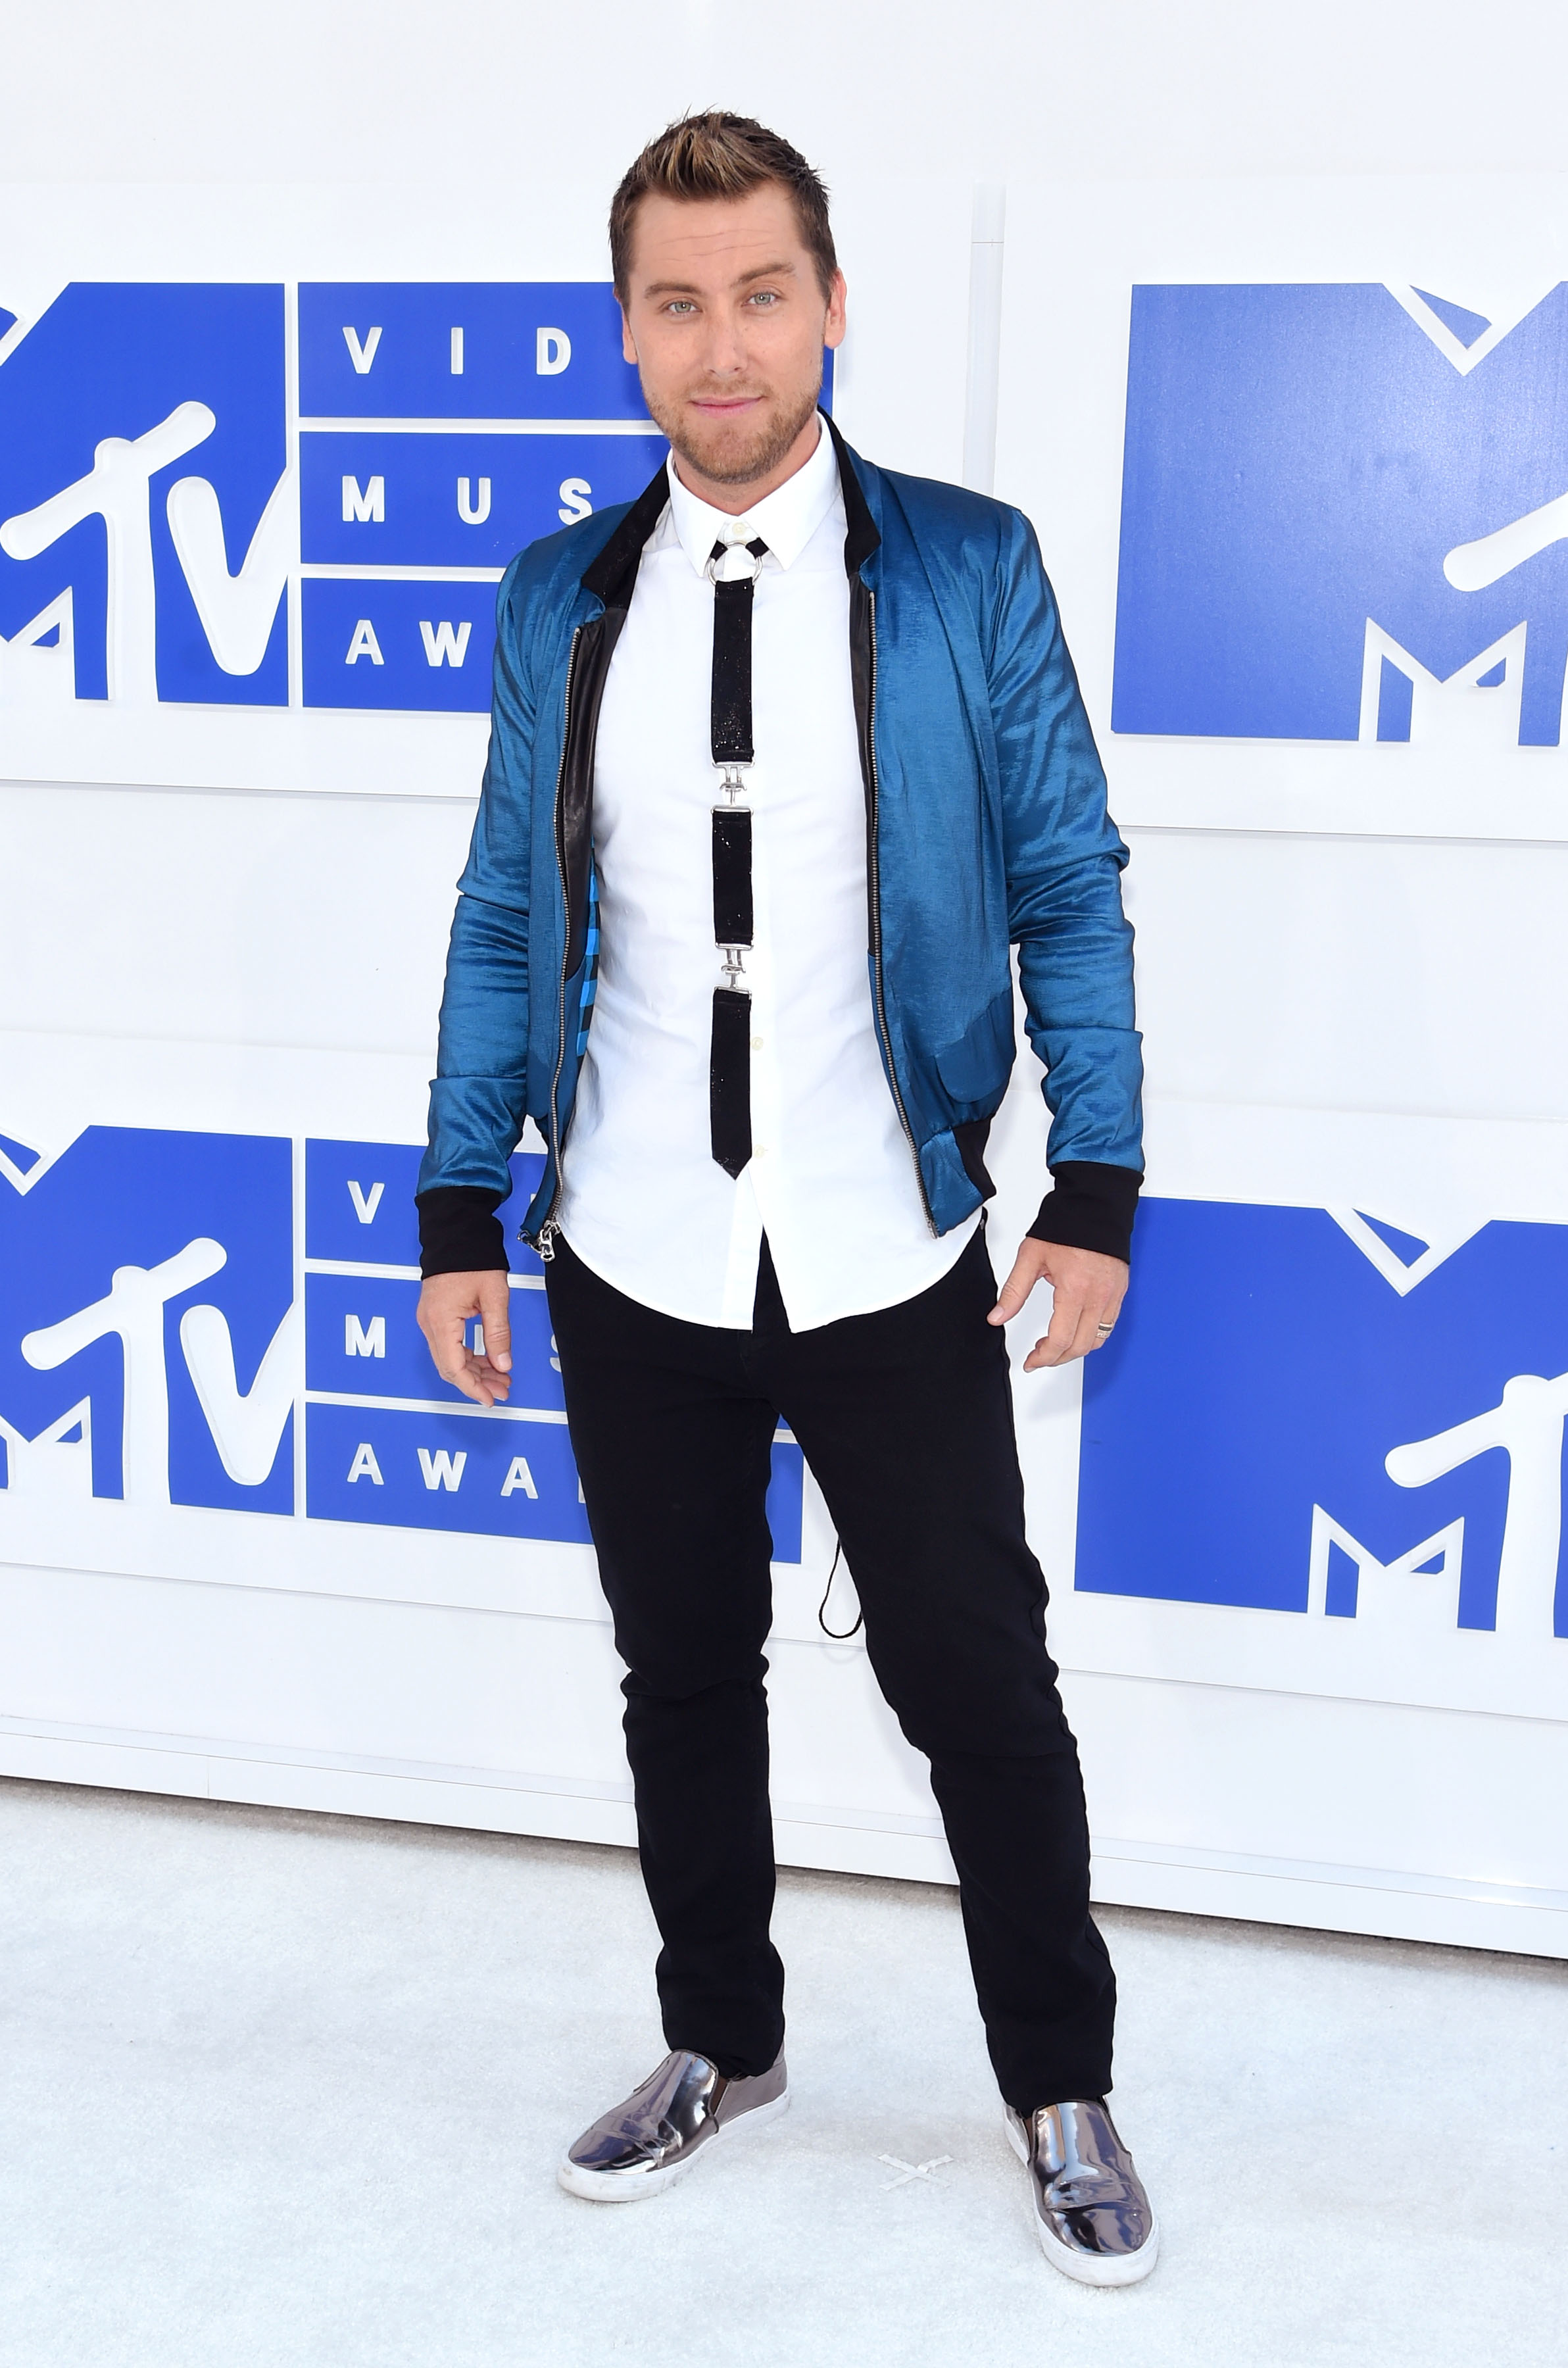 Lance Bass attends the 2016 MTV Video Music Awards at Madison Square Garden on Aug. 28, 2016 in New York City.